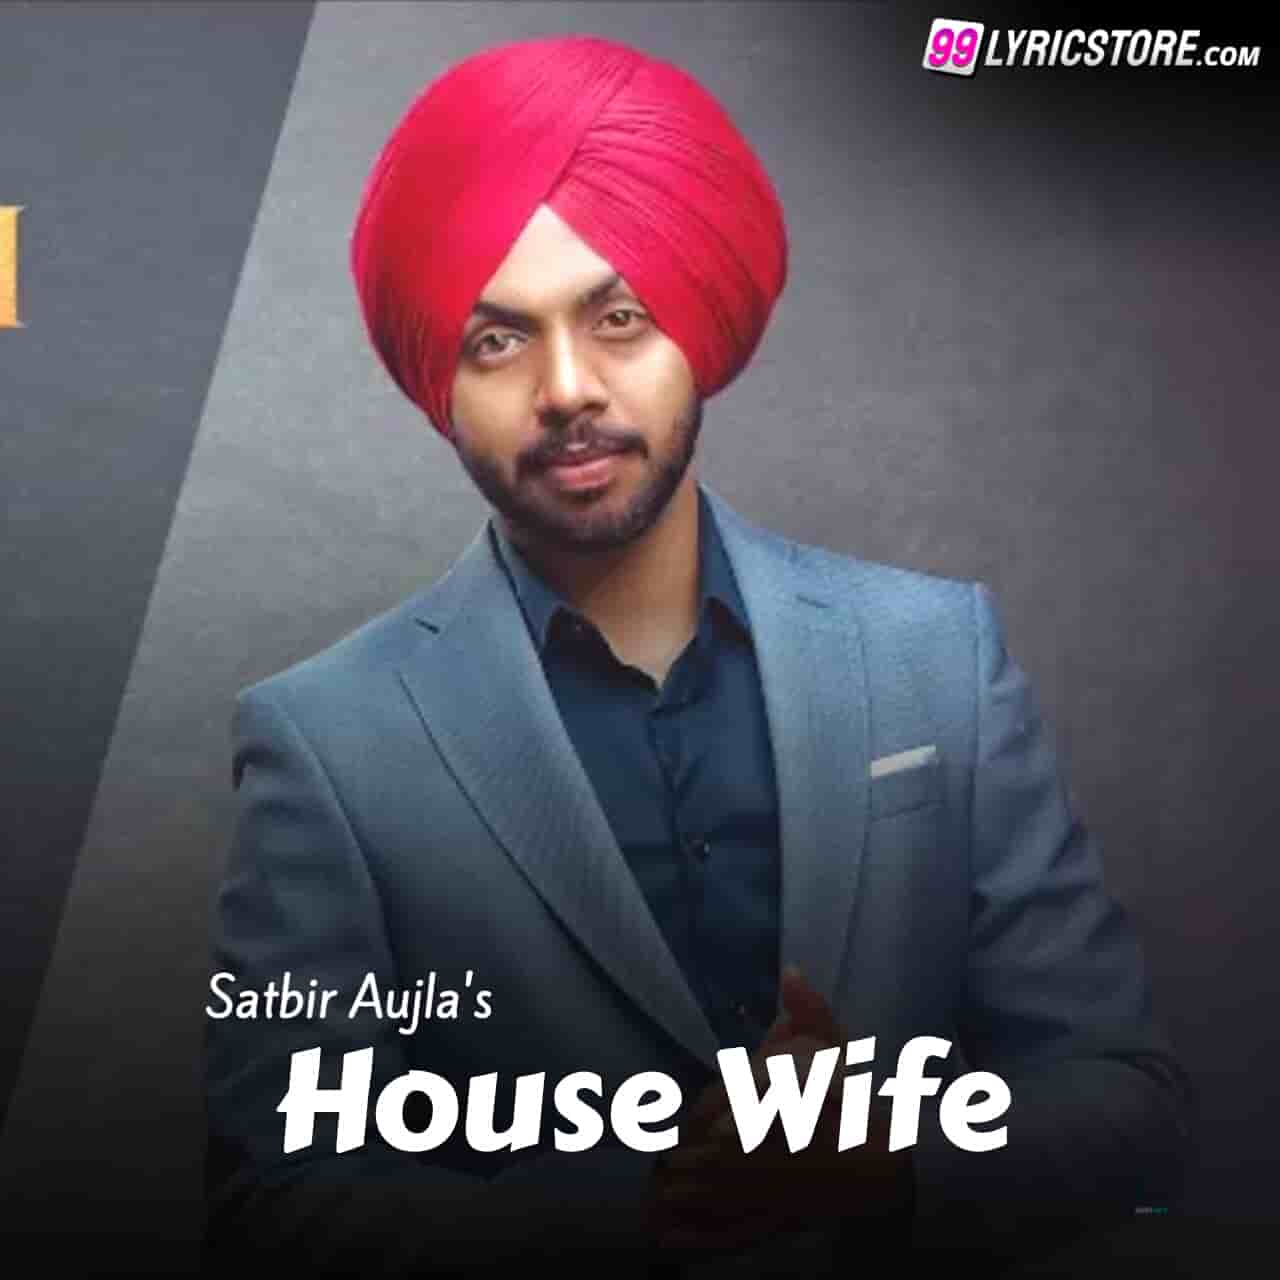 House Wife Punjabi song sung by Satbir Aujla from album sardari